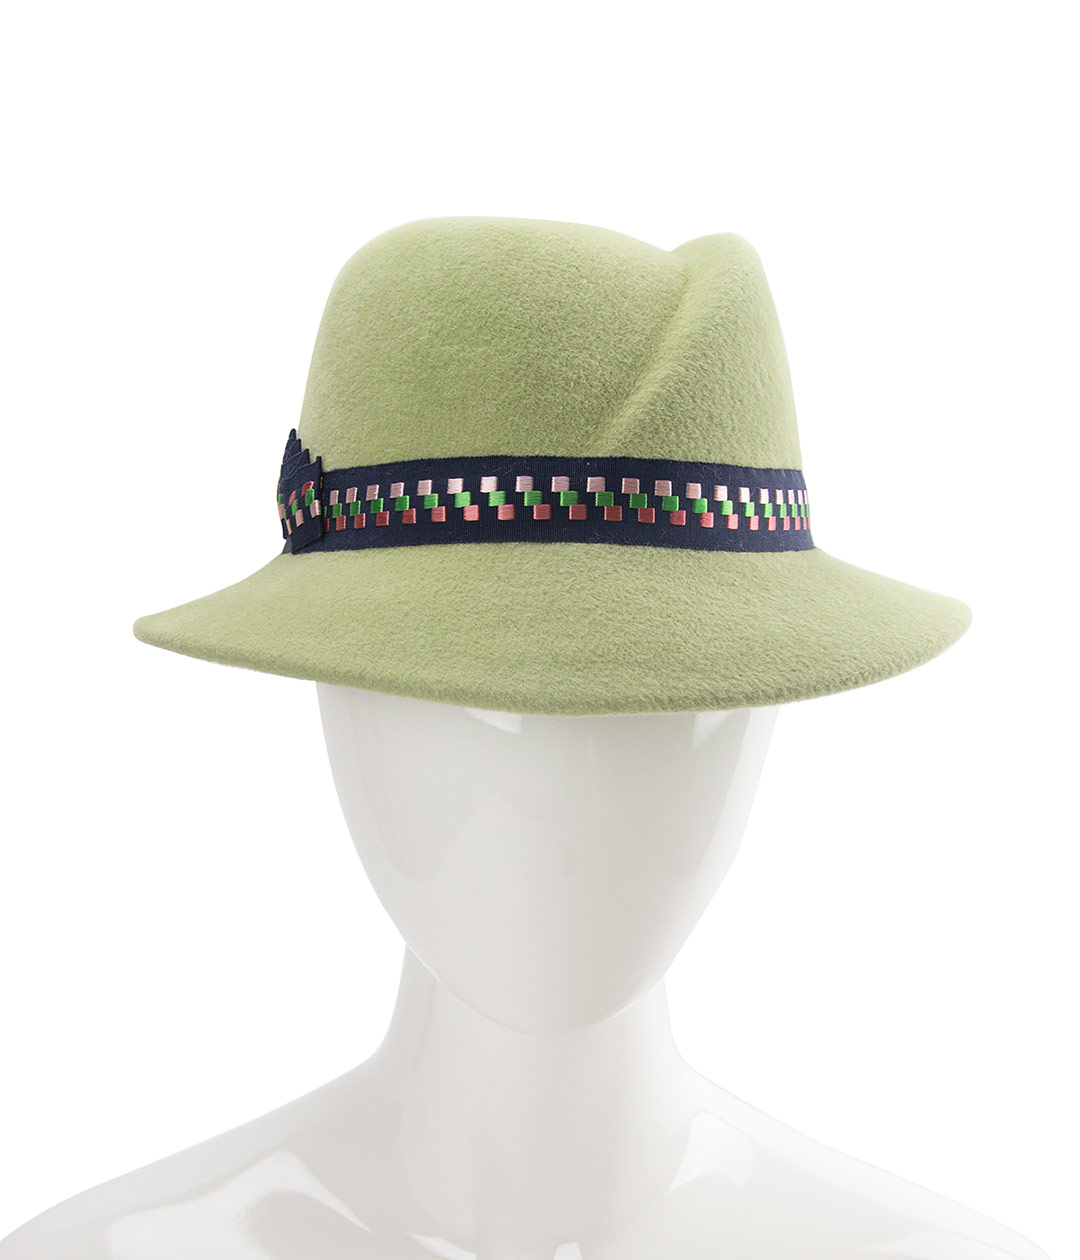 Front view of light sage green women's fedora